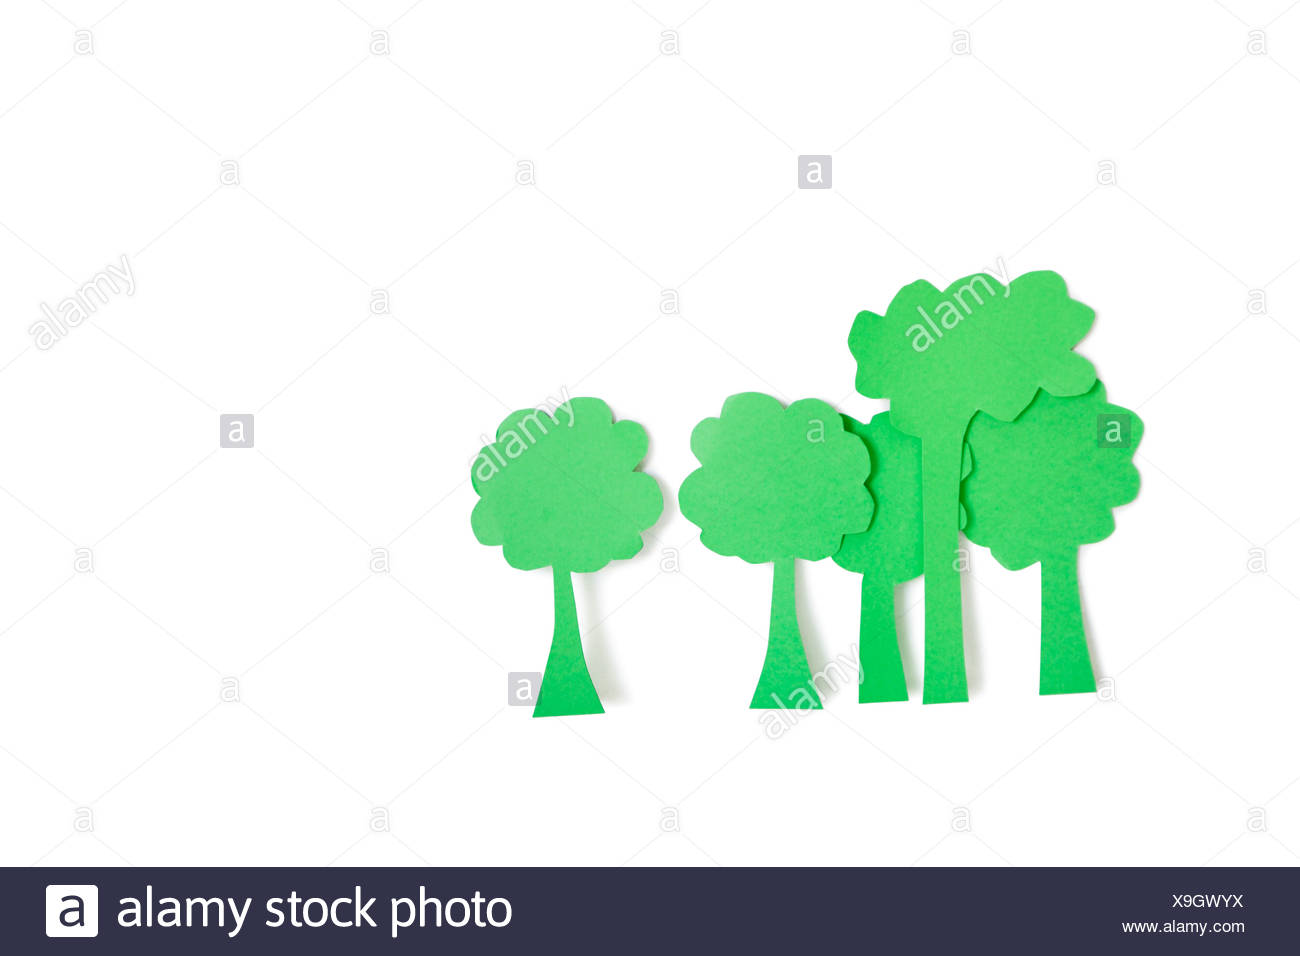 Paper cut outs of green trees over white background - Stock Image